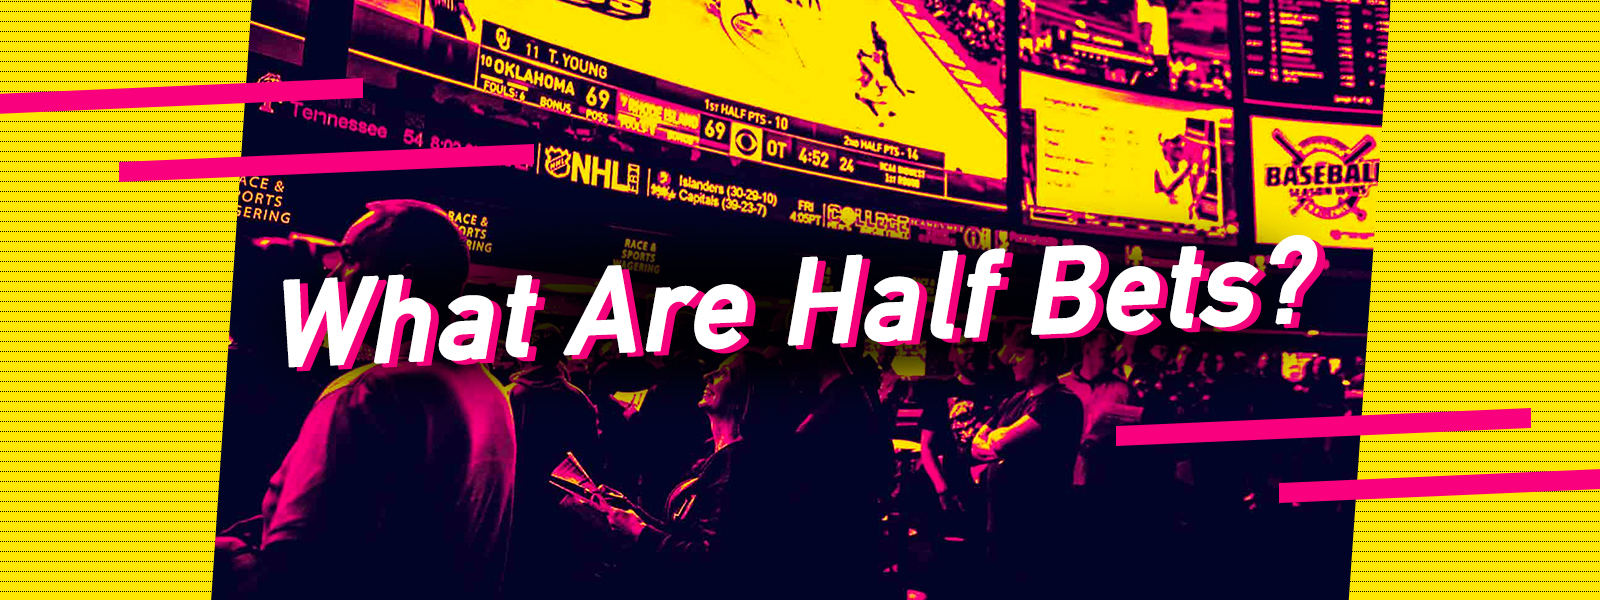 What Are Half Bets?